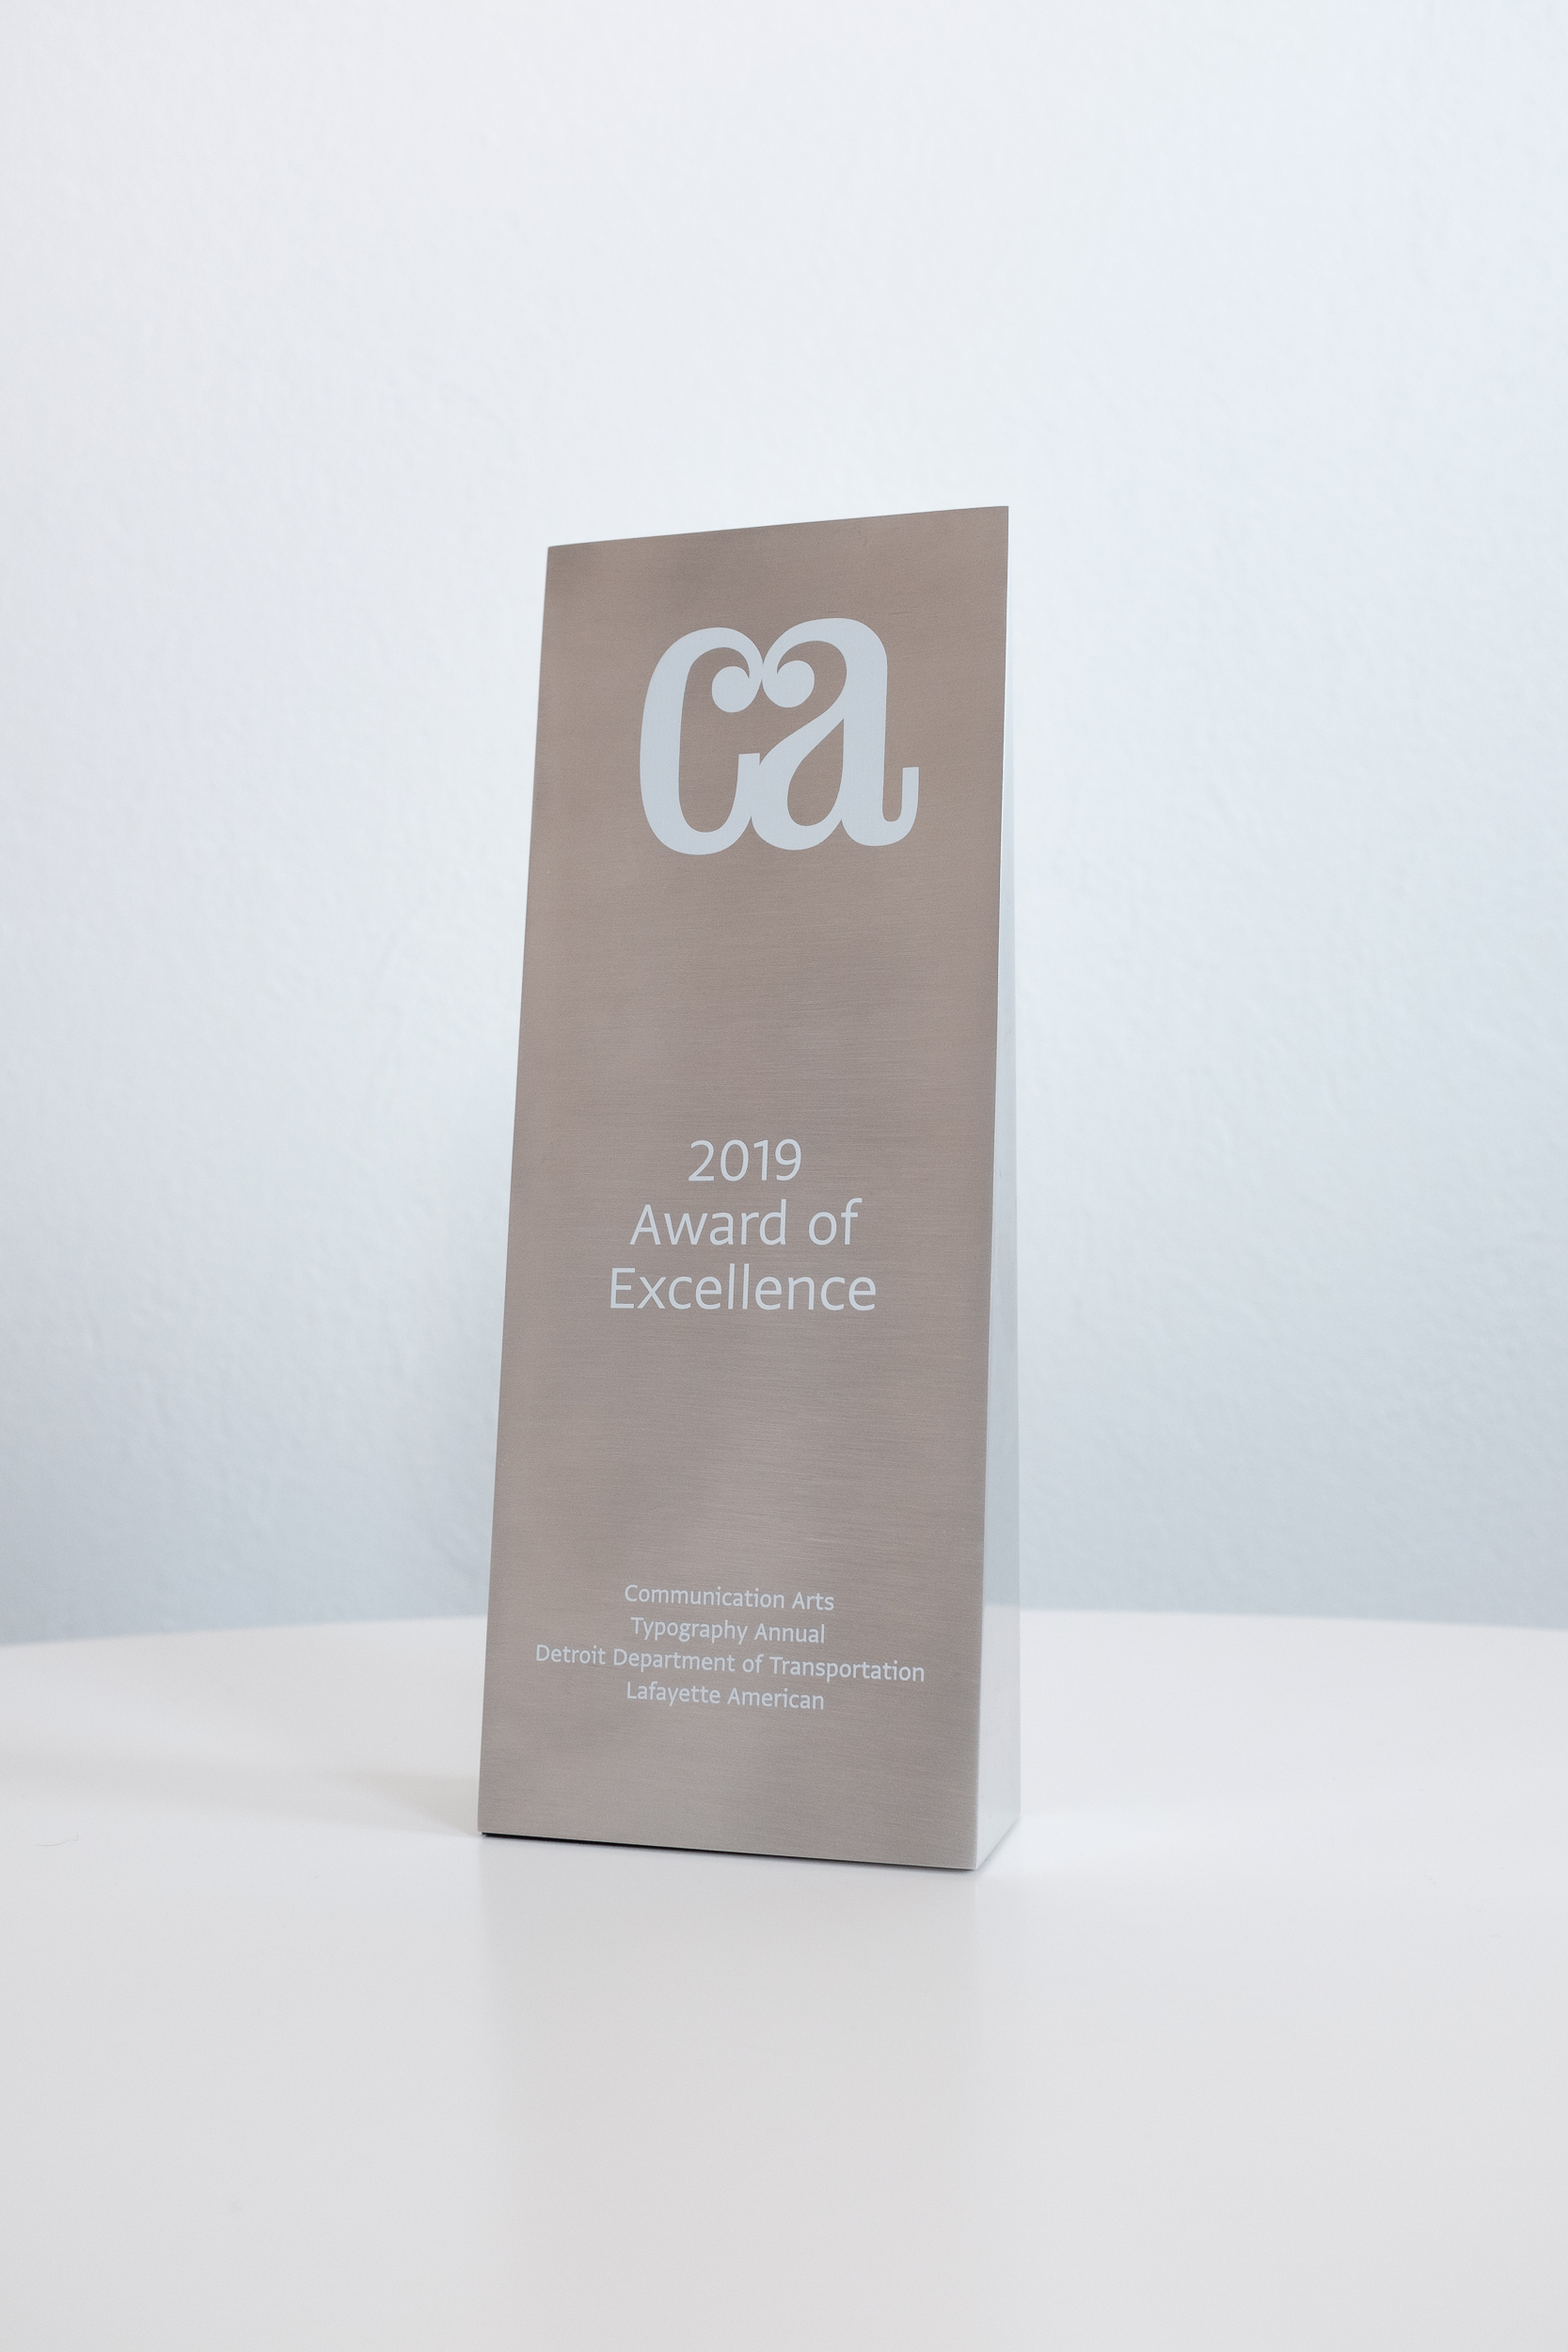 Communication Arts Award of Excellence for DDOT redesign